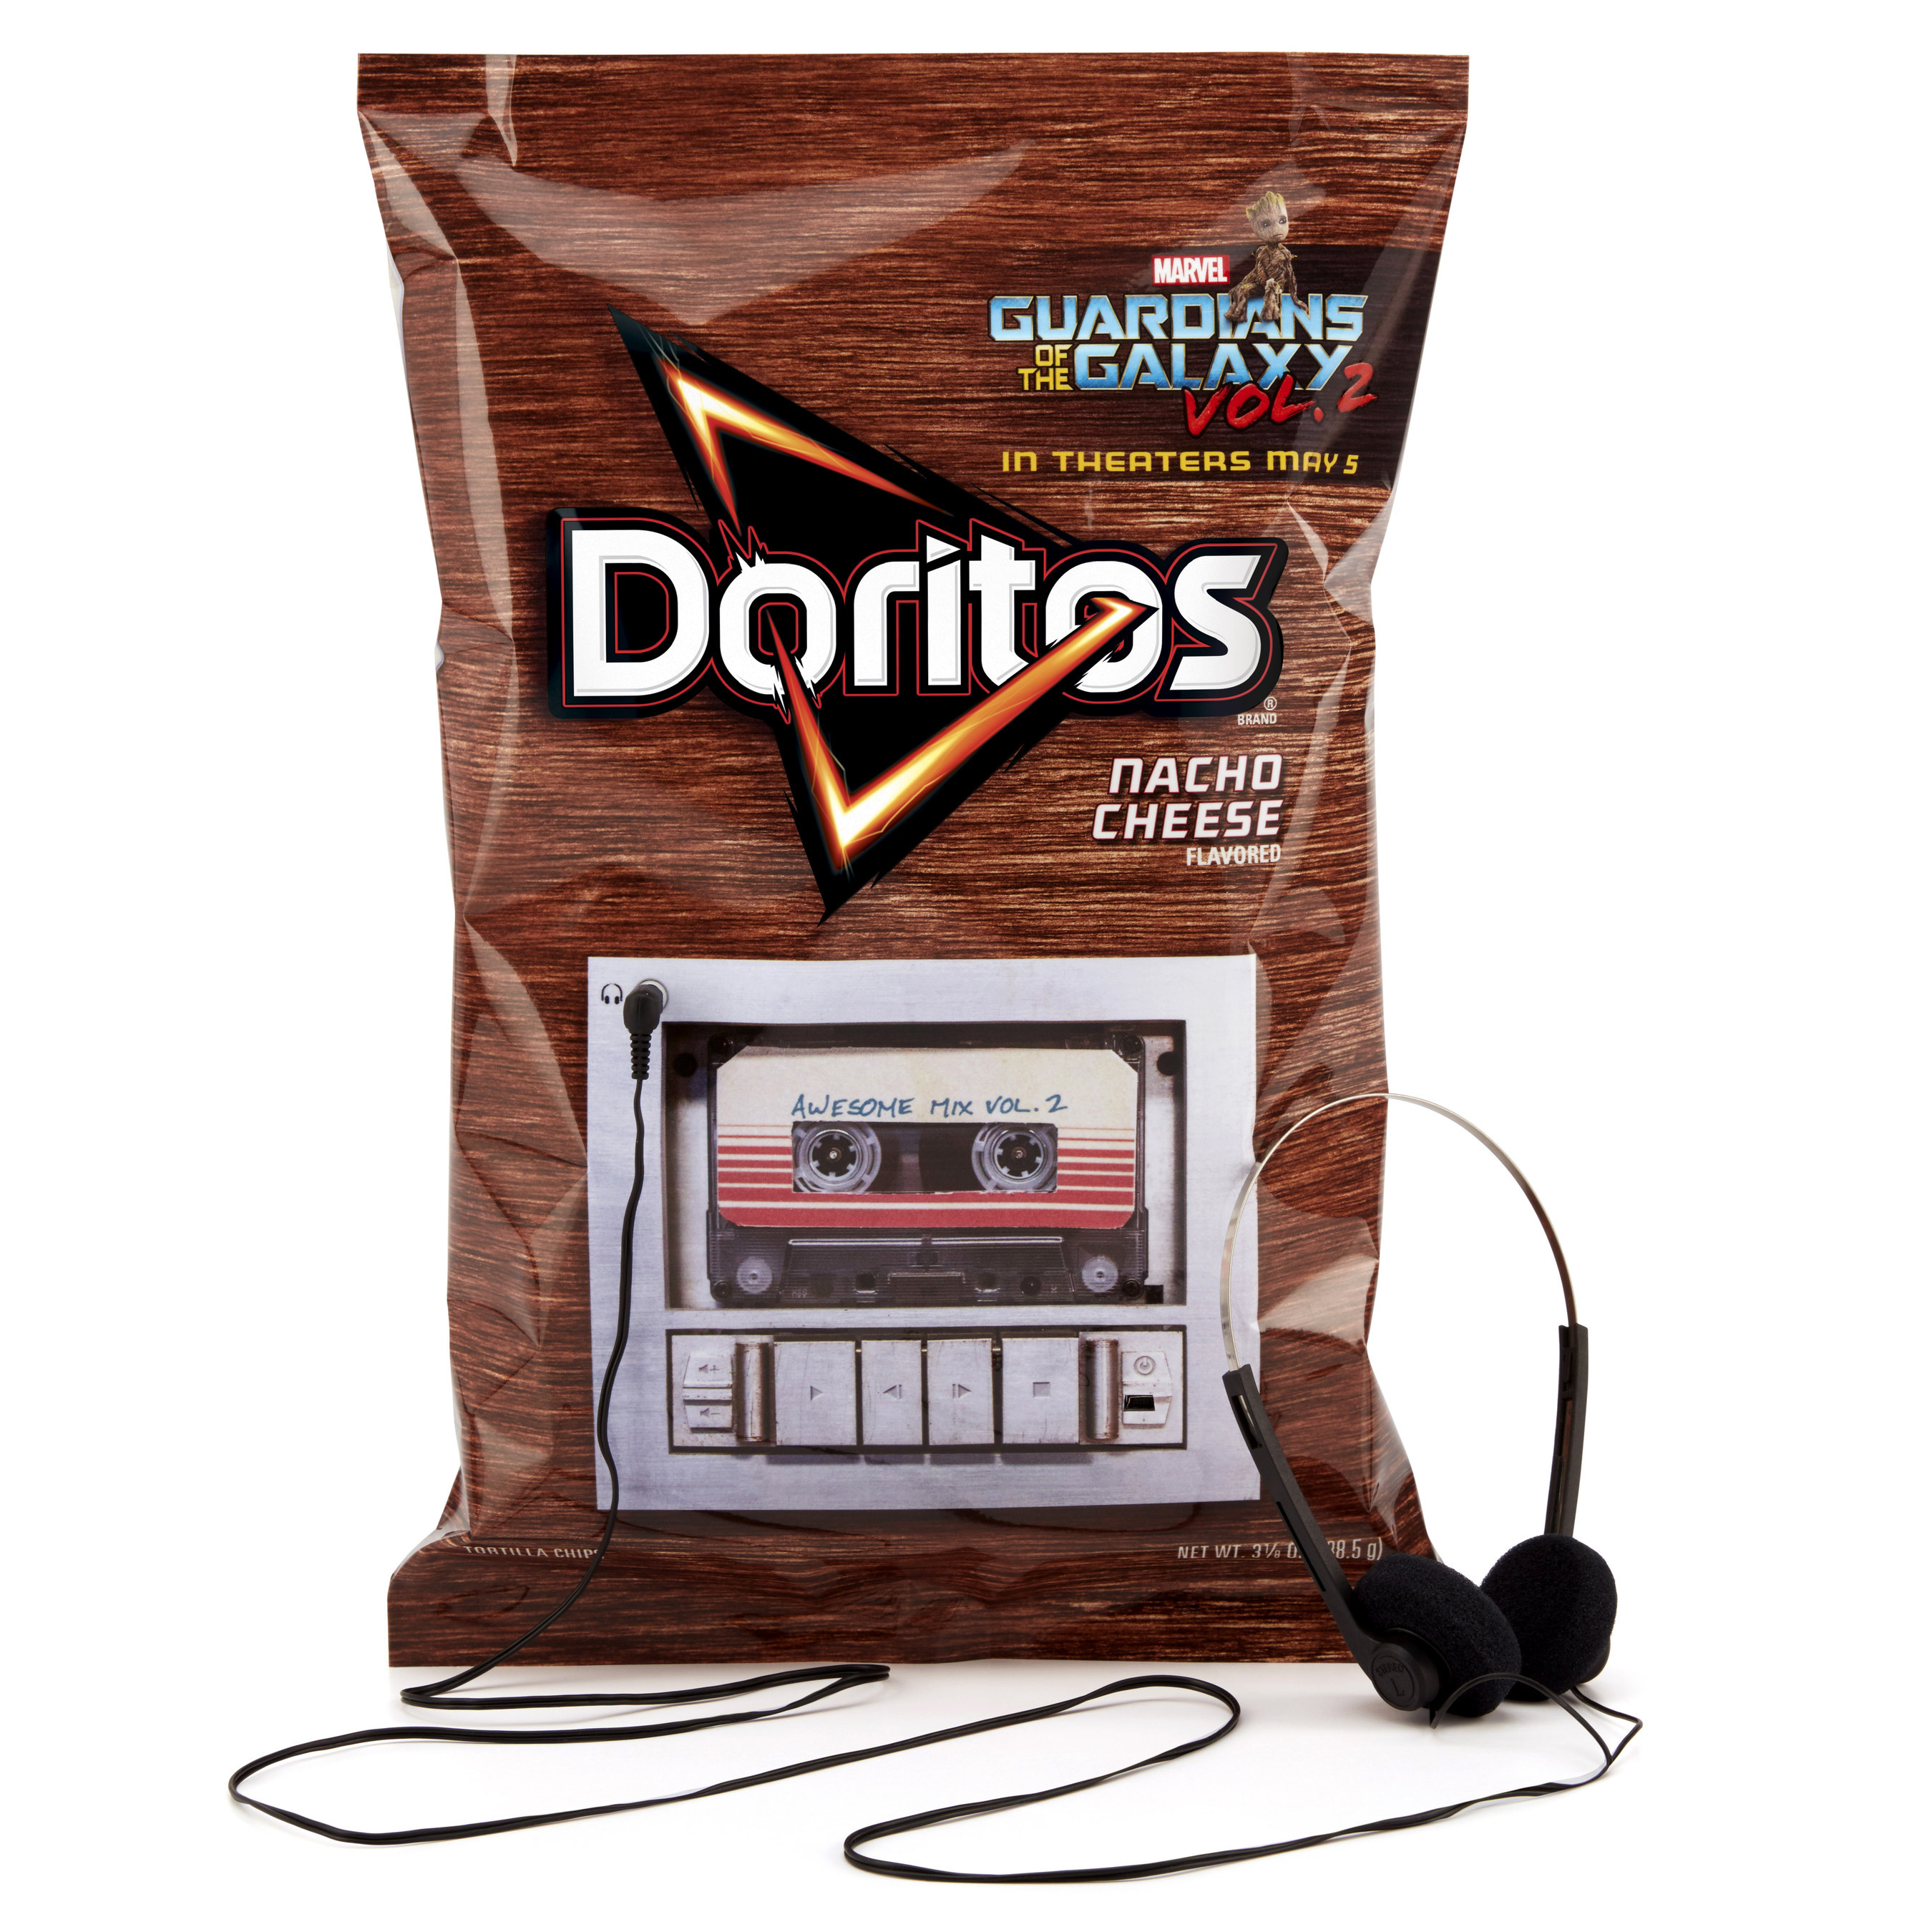 Doritos Rocks Out With 'Guardians of the Galaxy Vol. 2' for Out-of-this-World Soundtrack Release